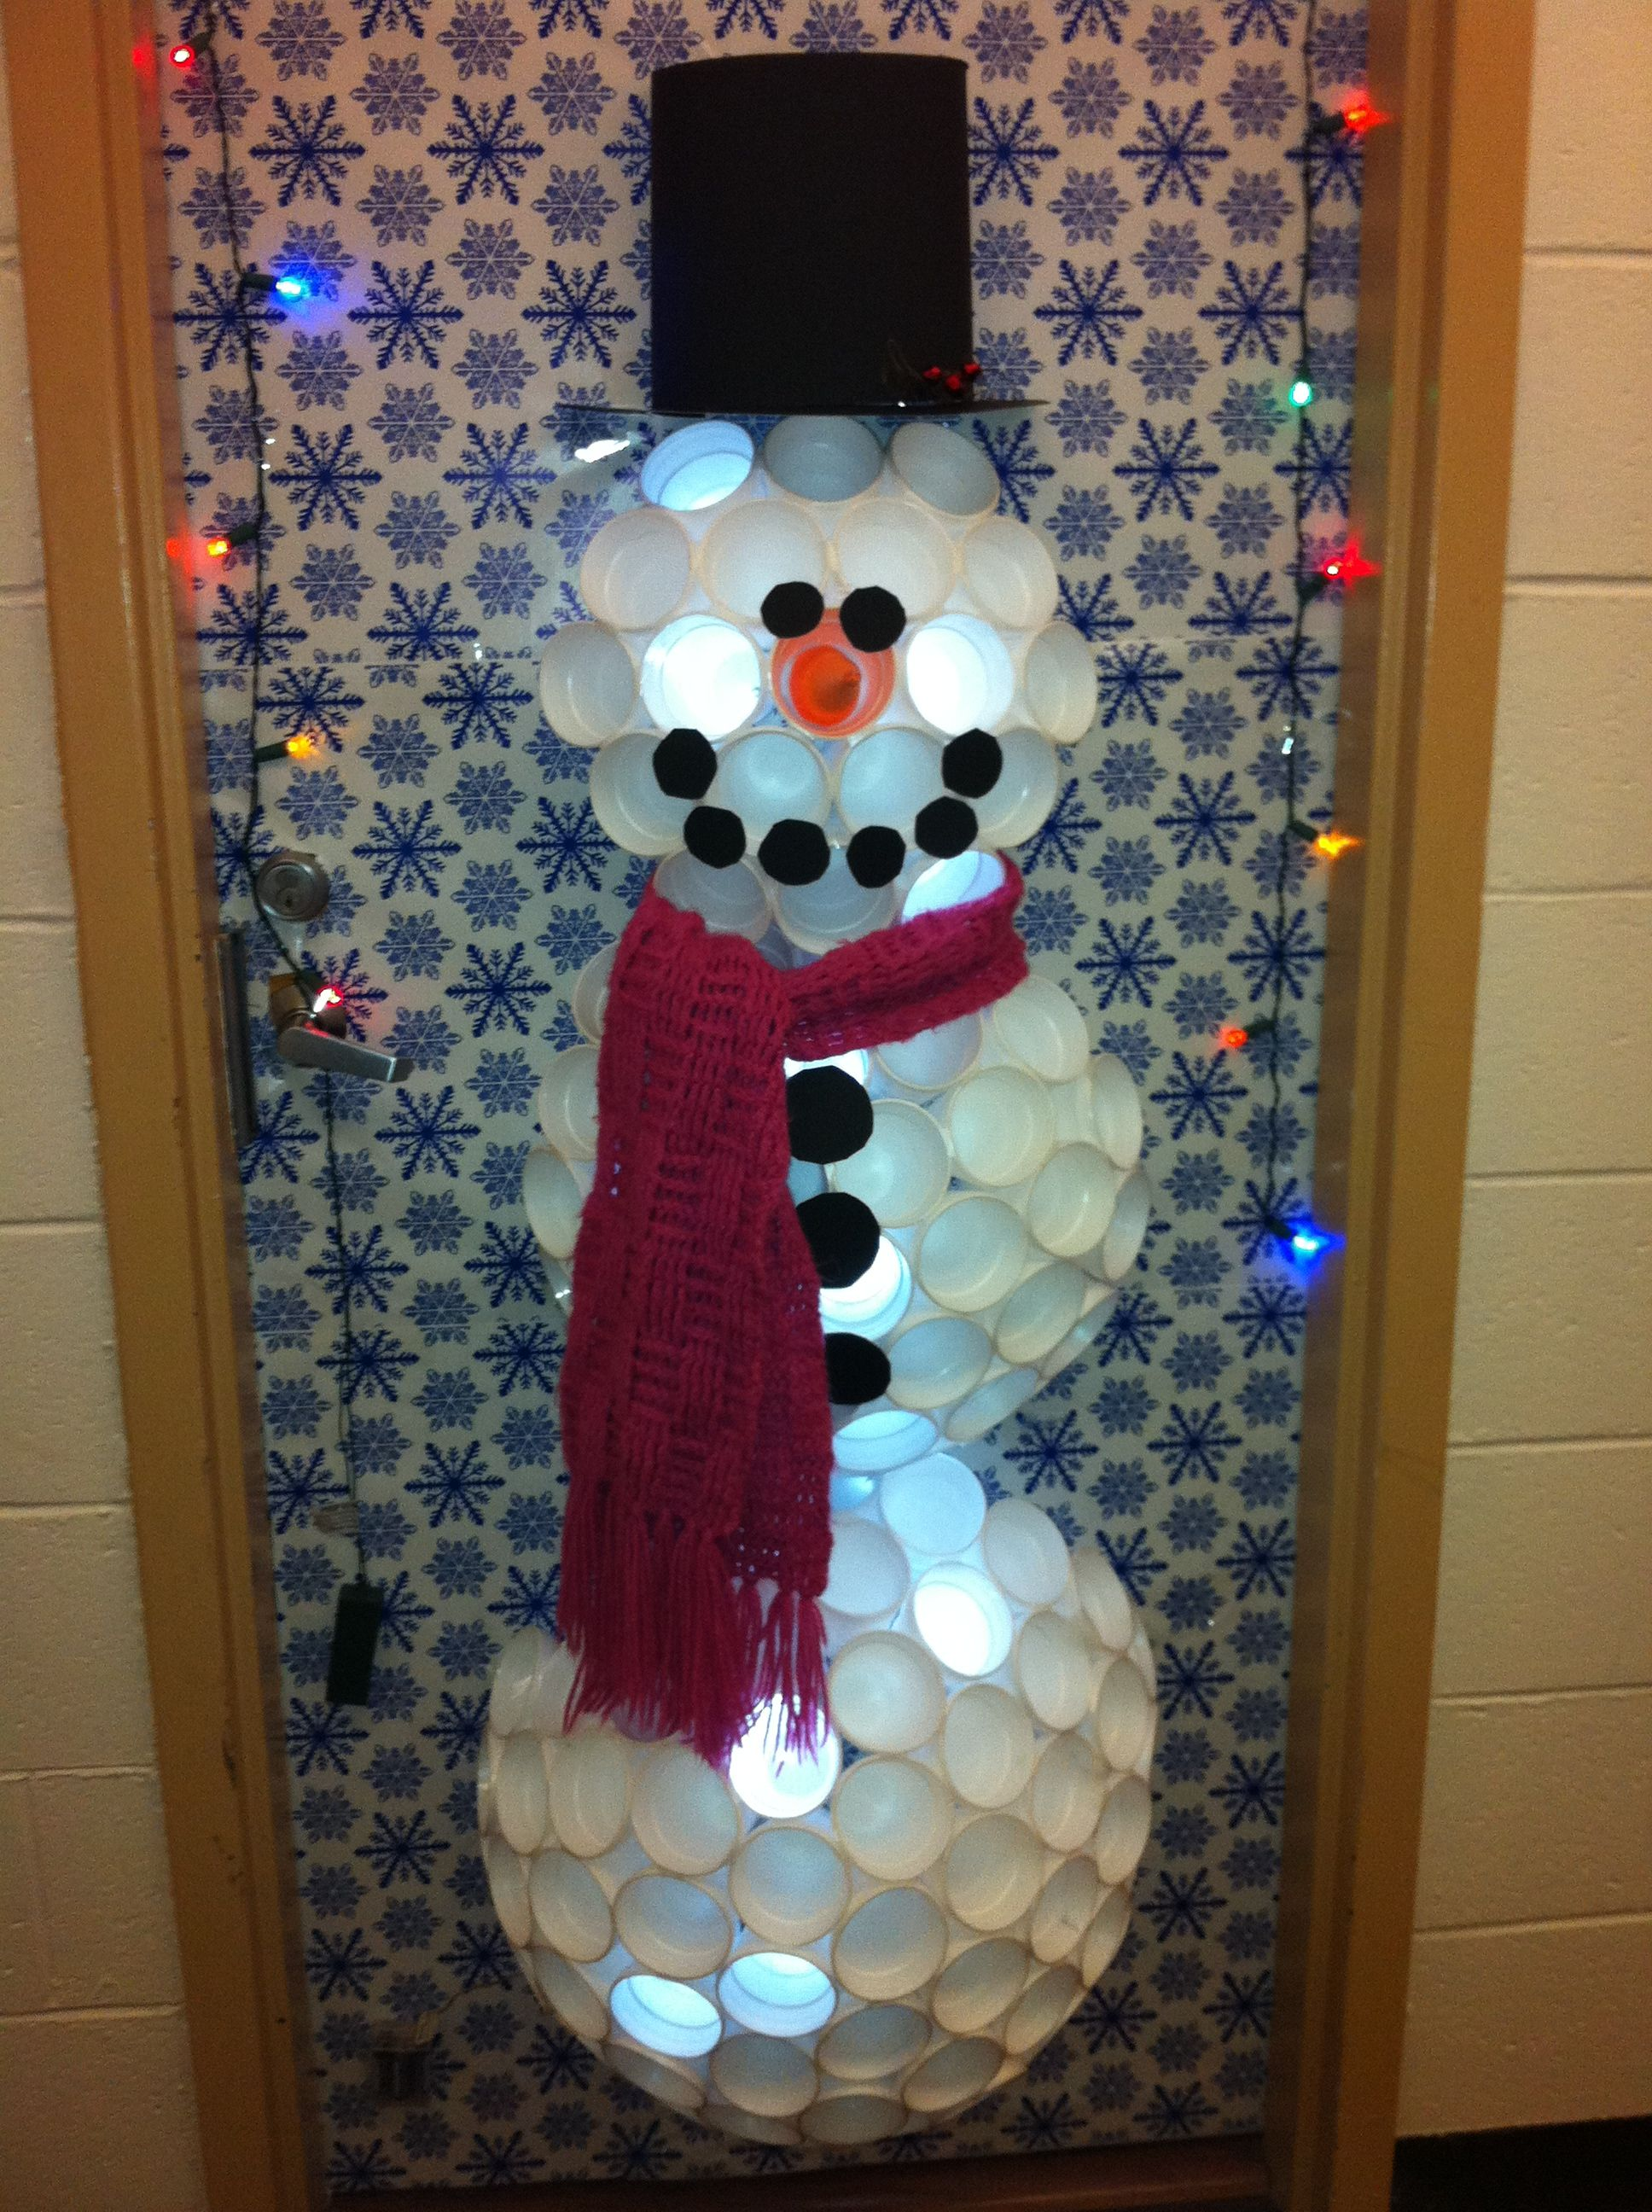 Have a little fun during the holiday! Decorate your college dorm ...